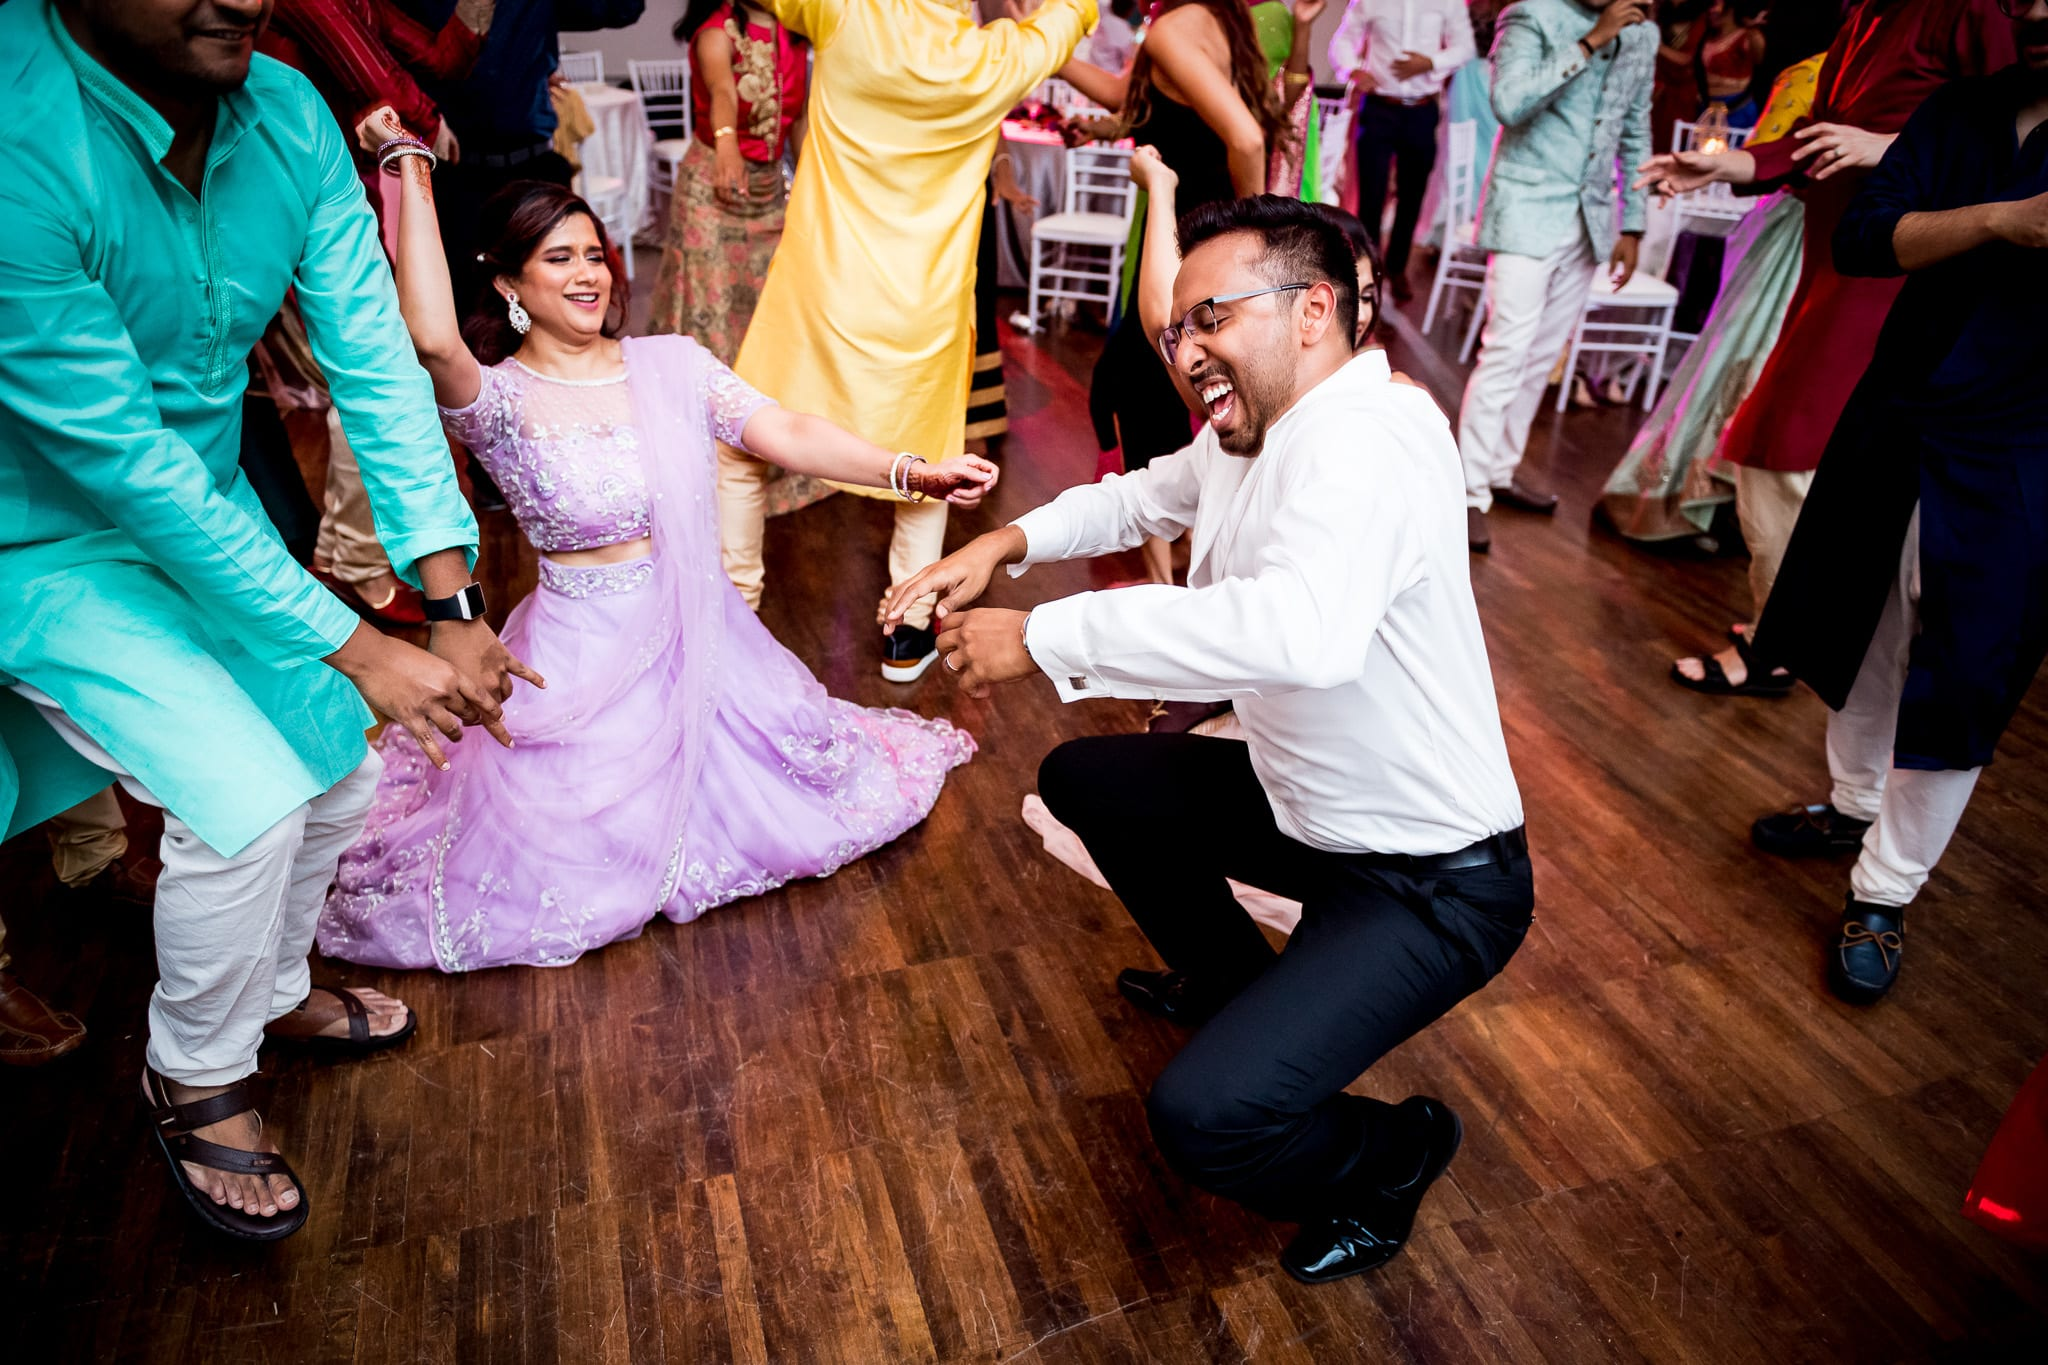 Wedding guests dance low to the ground with the bride